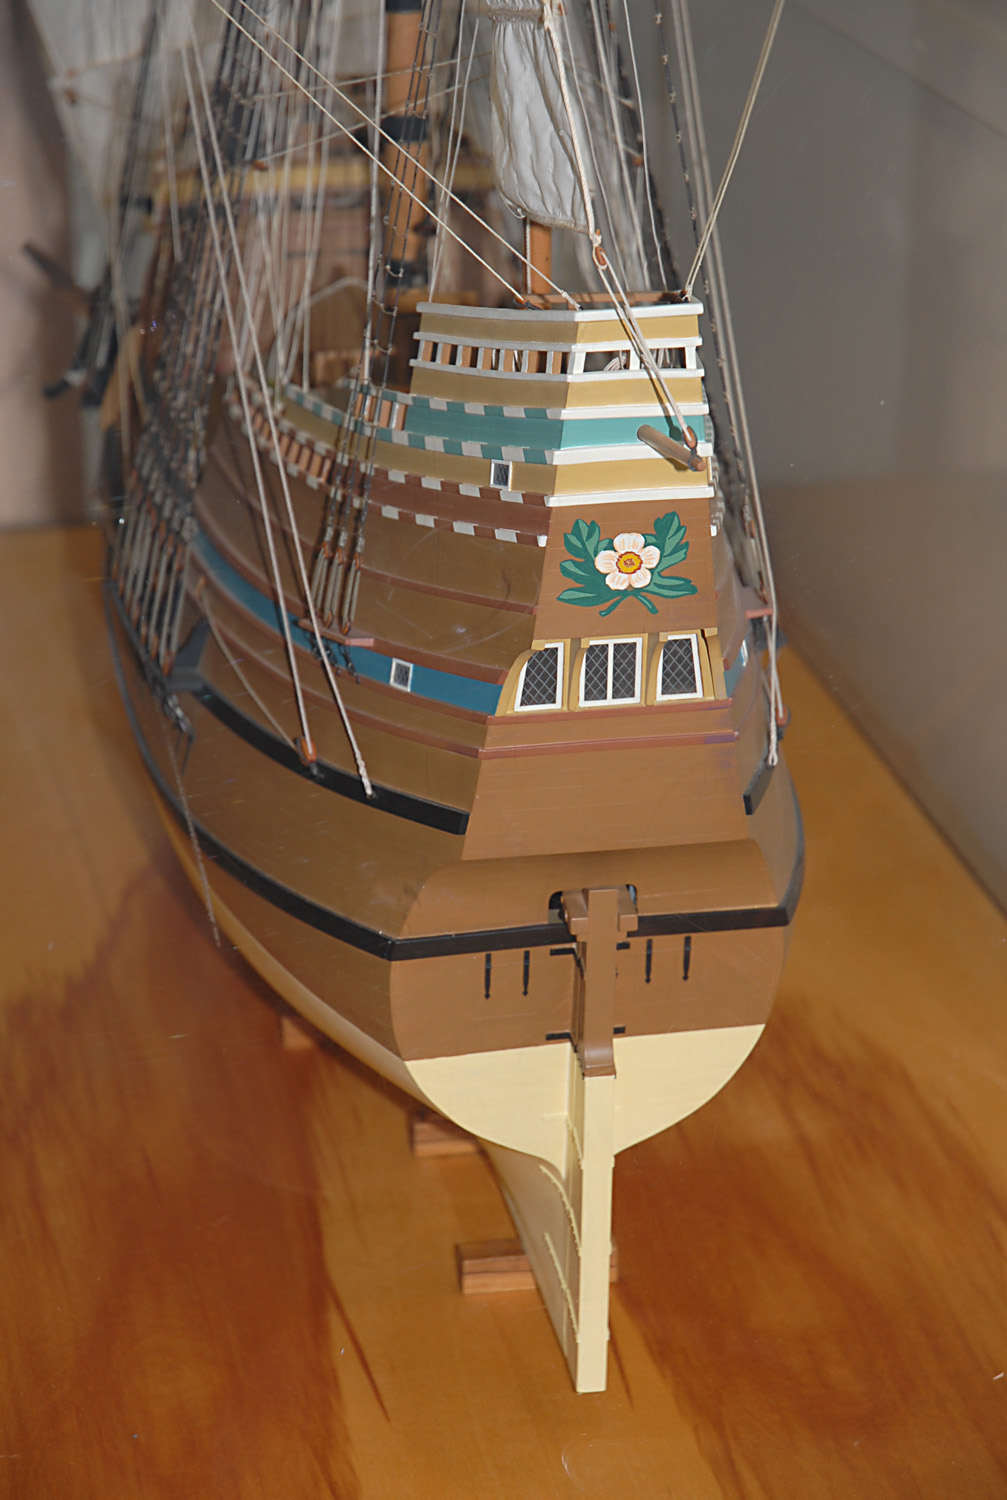 27 Mayflower II model by Eric A.R. Romberg, Jr.s.jpg